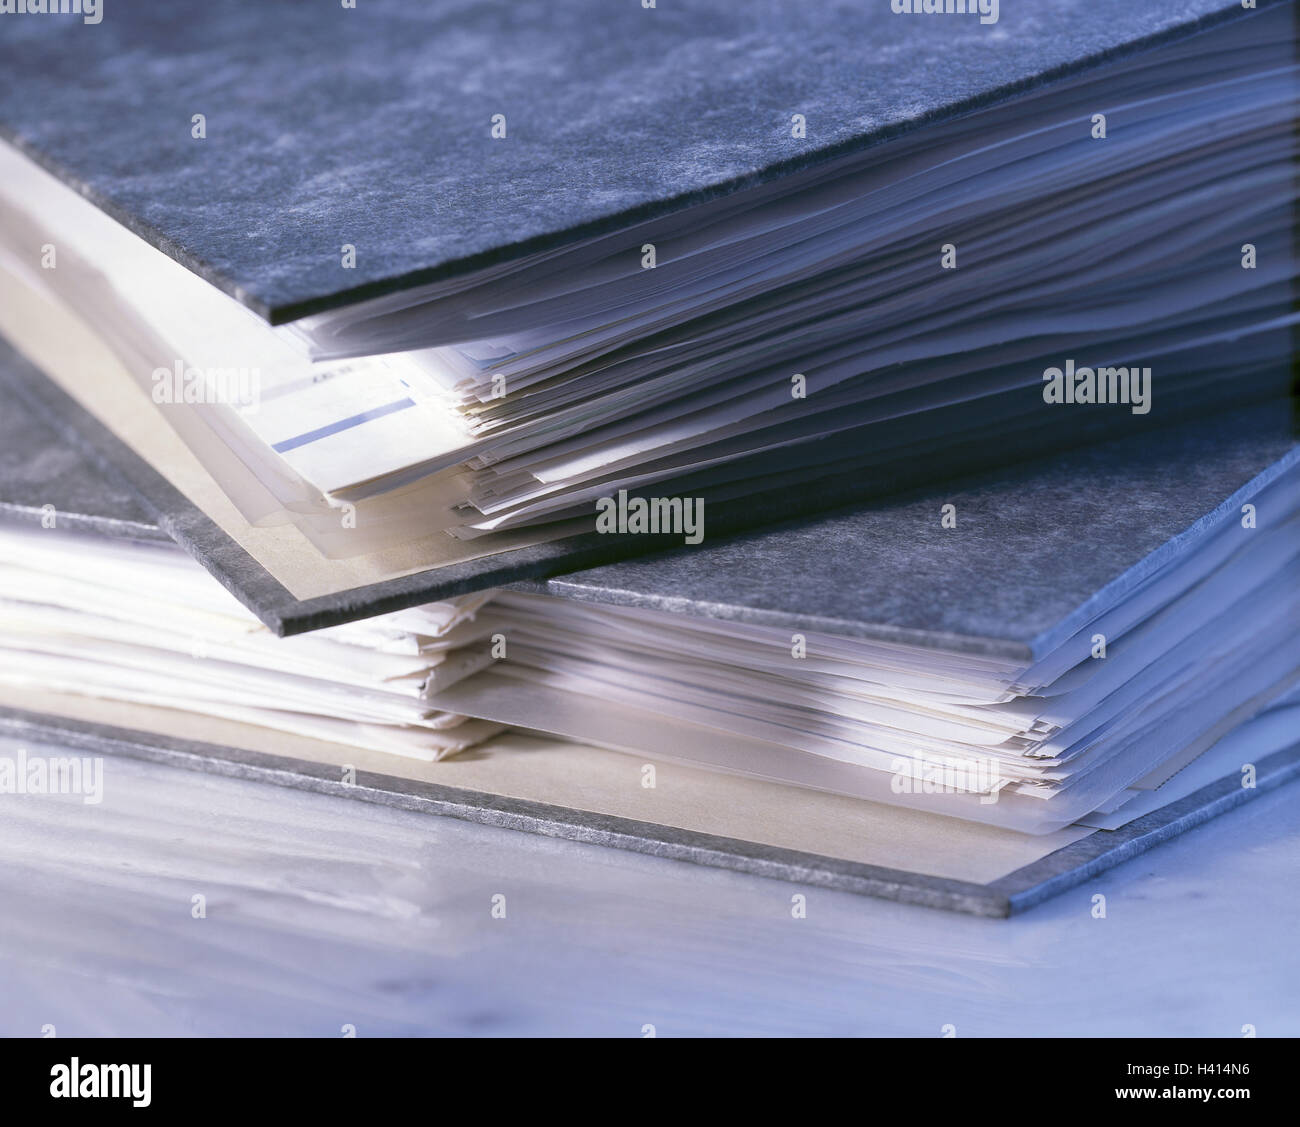 Folders, two, close up, office, office equipment, office implements, folders, files, bases, documents, remove, filed - Stock Image